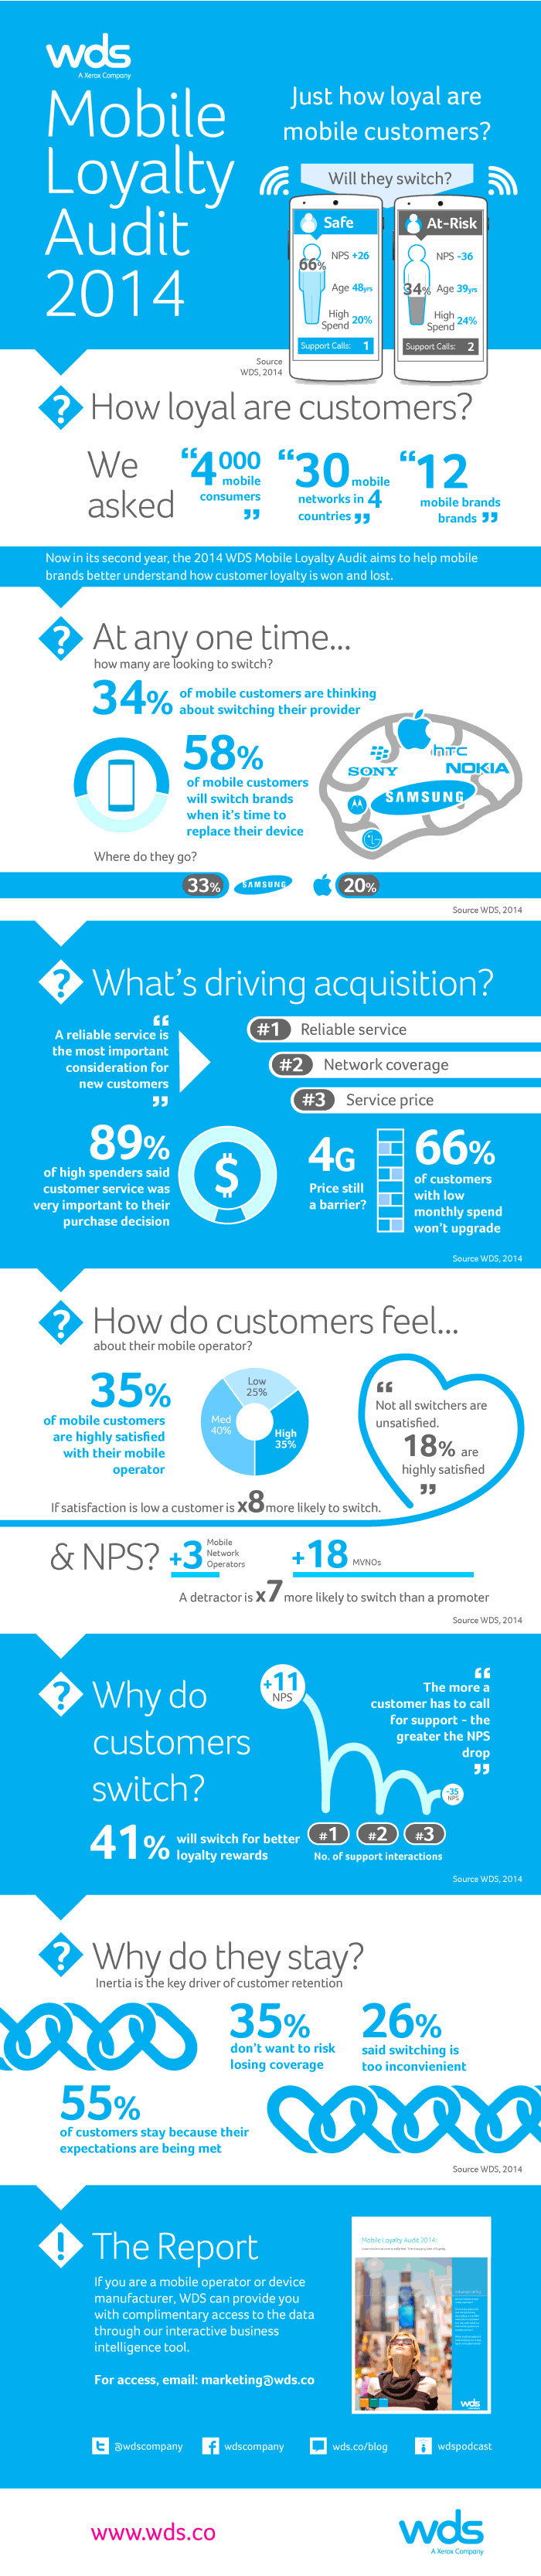 Infographic: Mobile Loyalty Audit Results, Year 2 - A new WDS, A Xerox Company, survey of 4,000 mobile subscribers shows that 25 percent will stay with their mobile carrier because it's too inconvenient to switch. (Graphic: Business Wire)